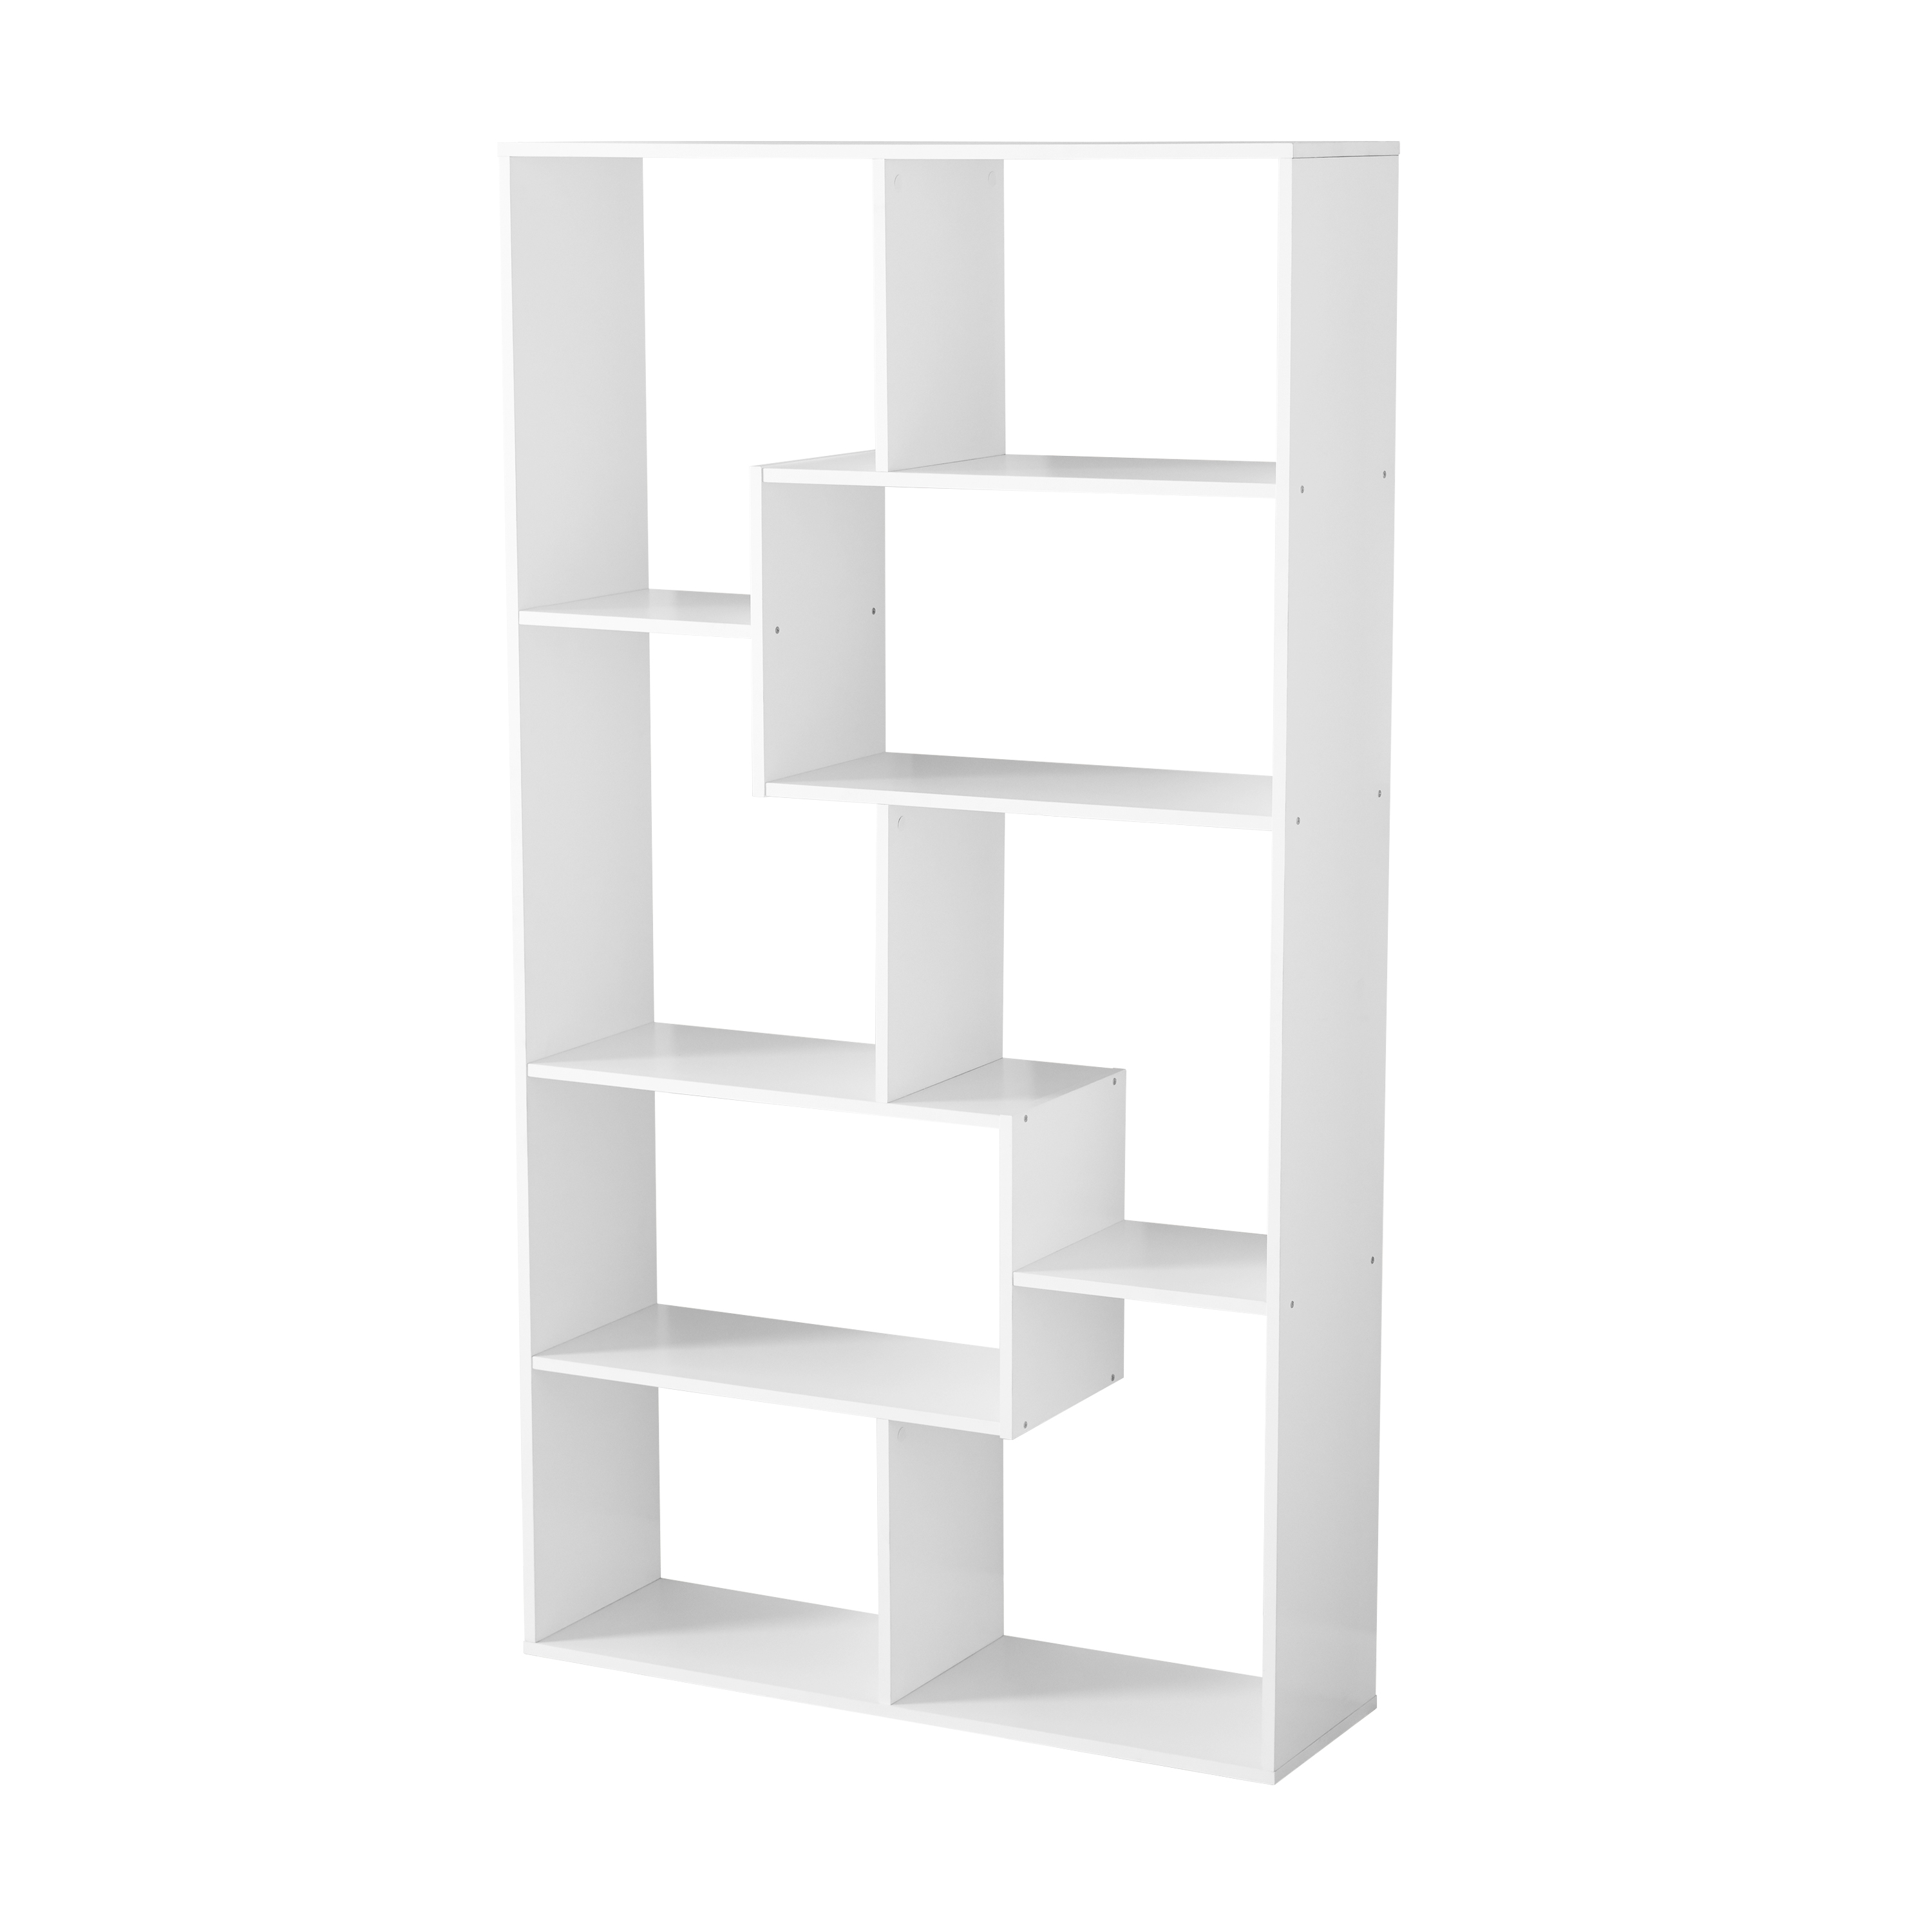 Details About Cube Shelving Unit Tall Narrow Bookcase 8 Shelf Display Case Media Storage Open